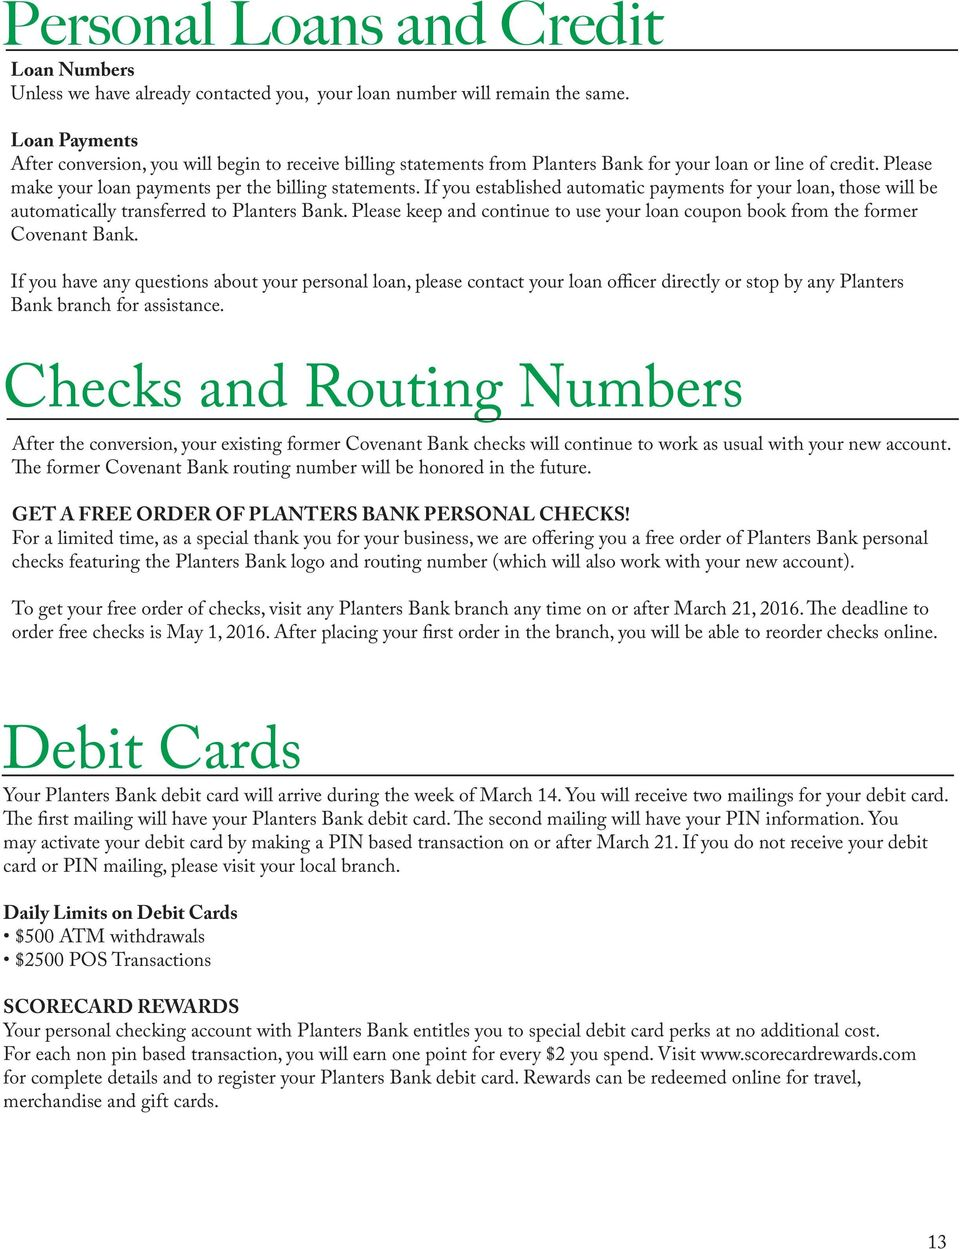 Growing ther... GROWING THER - PDF on bank switching number, bank ach number, bank accounting number, bank of america rt number, bank sector, bank of oklahoma personal checkbook, bank checking, check number, bank code, bank swift number, bank branch, bank card number, bank access number, bank directory, bank iban number, bank transit number, bank bank, bank name, bank disclosures, bank account,